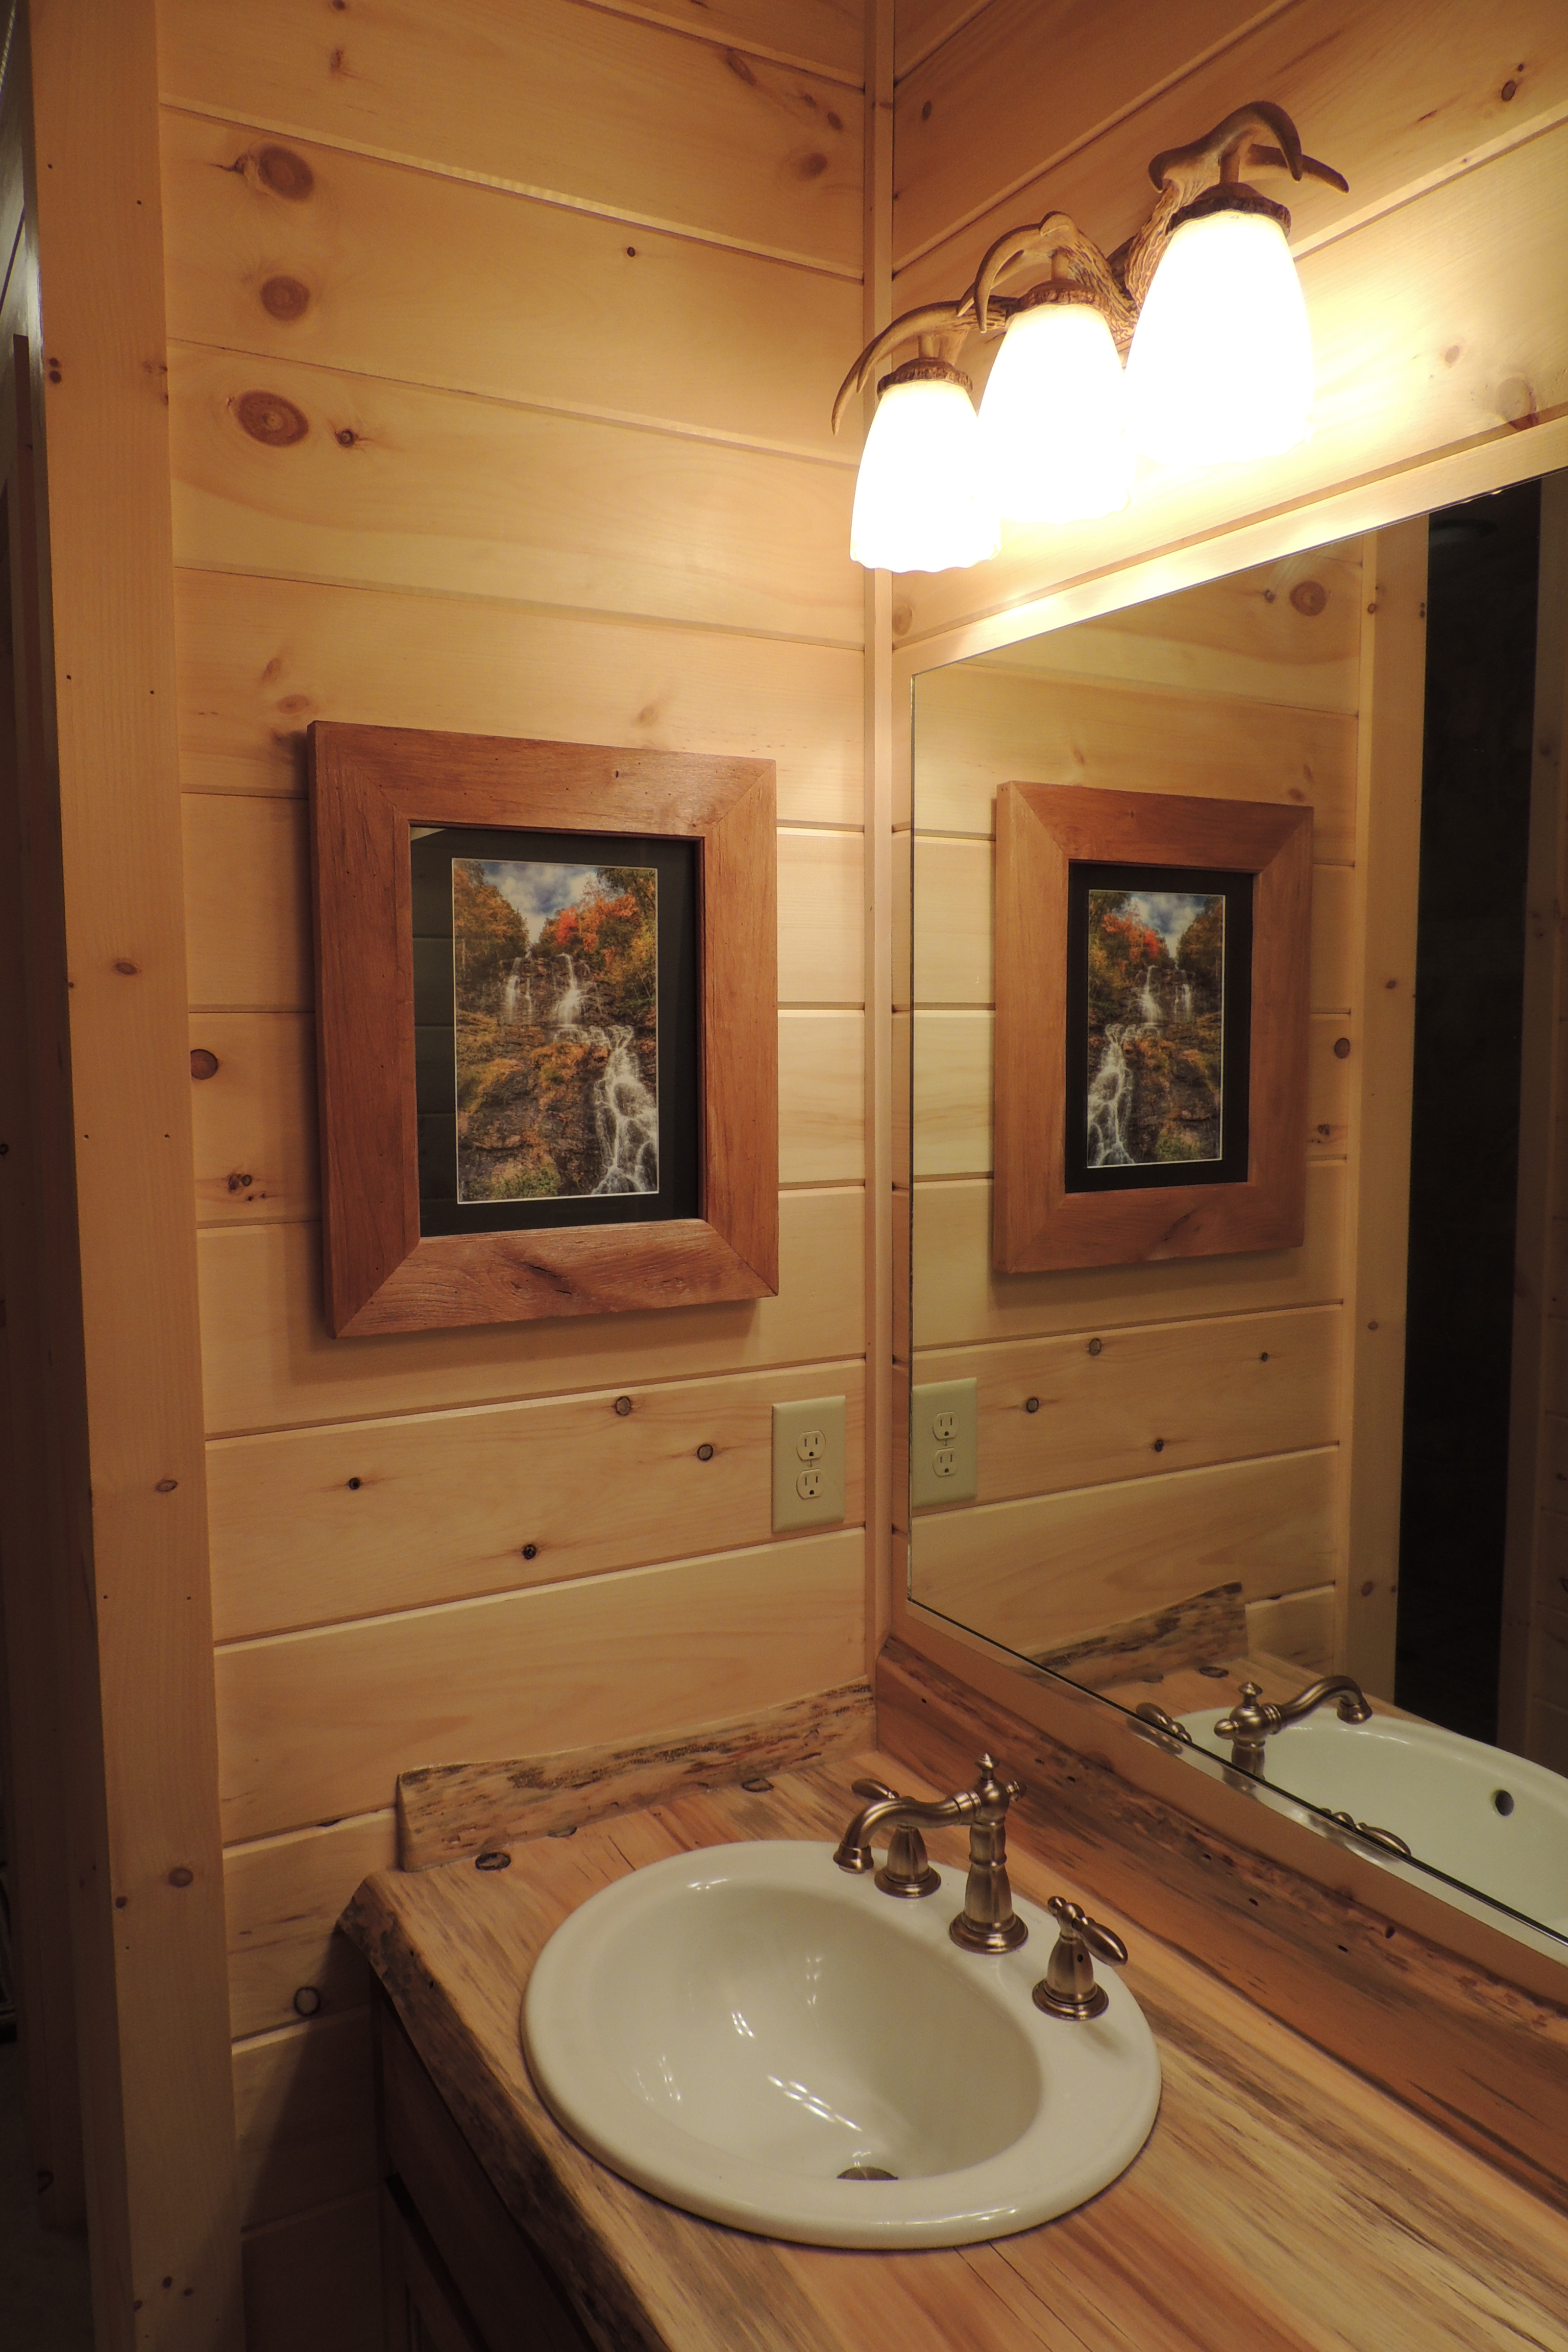 Customer Photos Testimonial Reviews For The Worlds Only Recessed